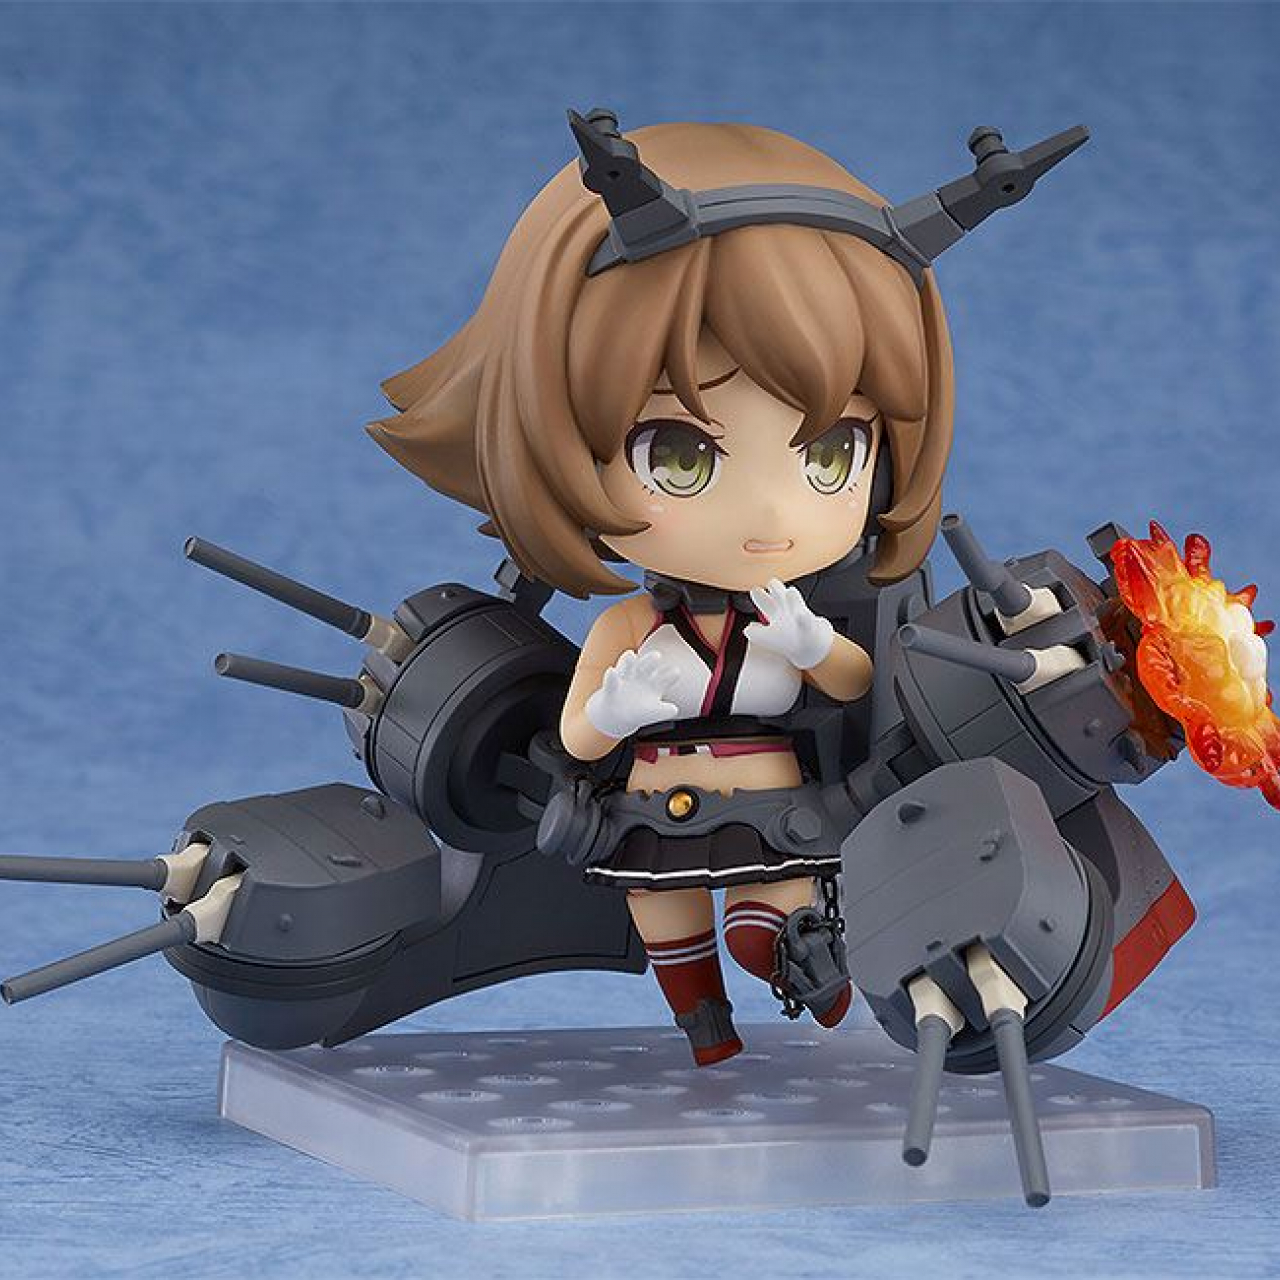 Kantai Collection Nendoroid Action Figure Mutsu 10 cm